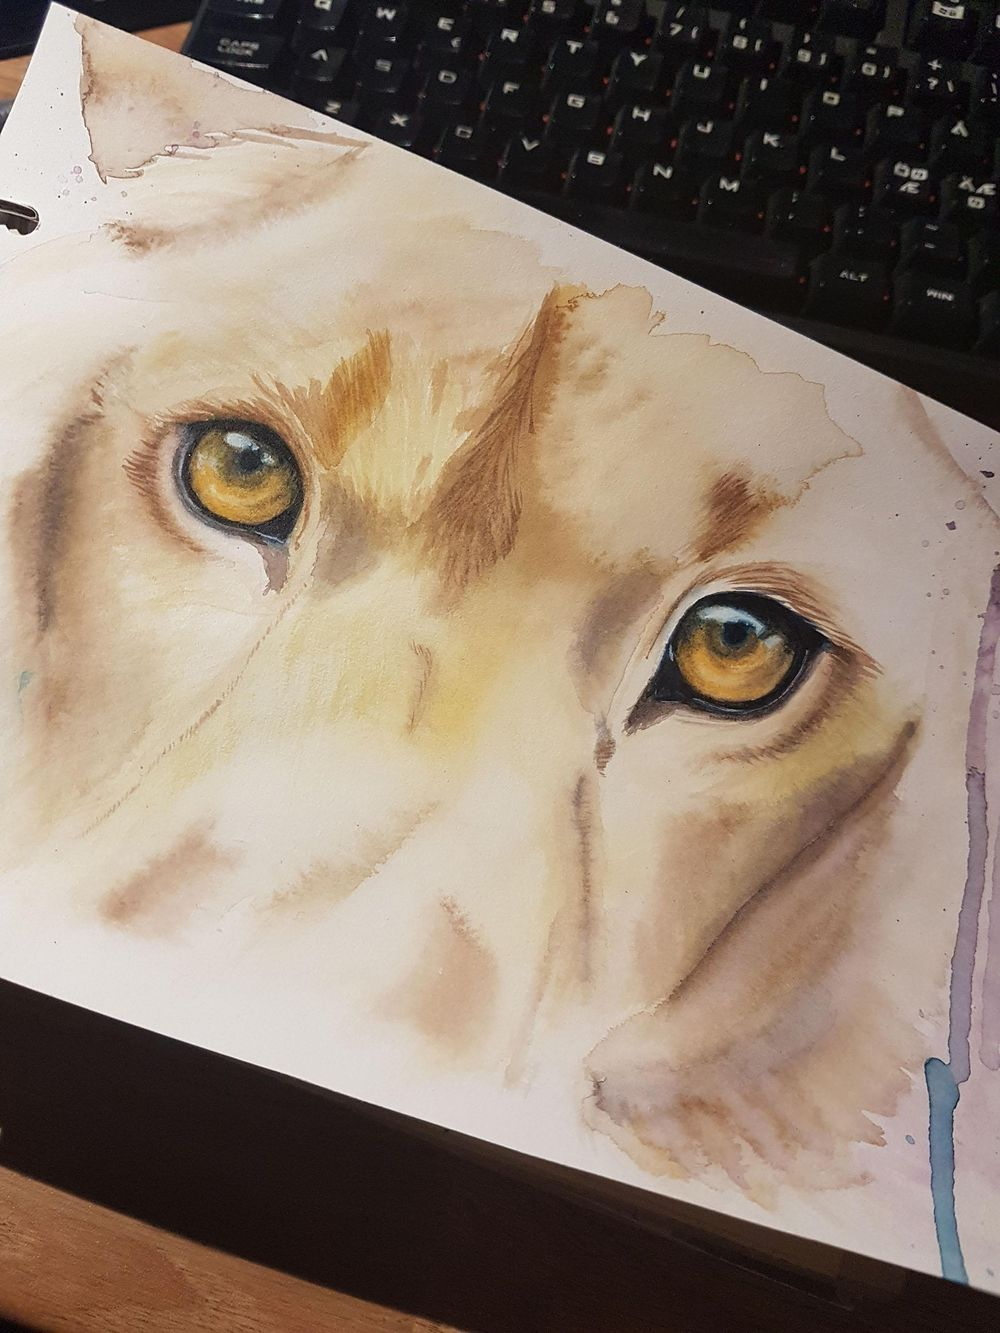 Lion eyes - image 1 - student project